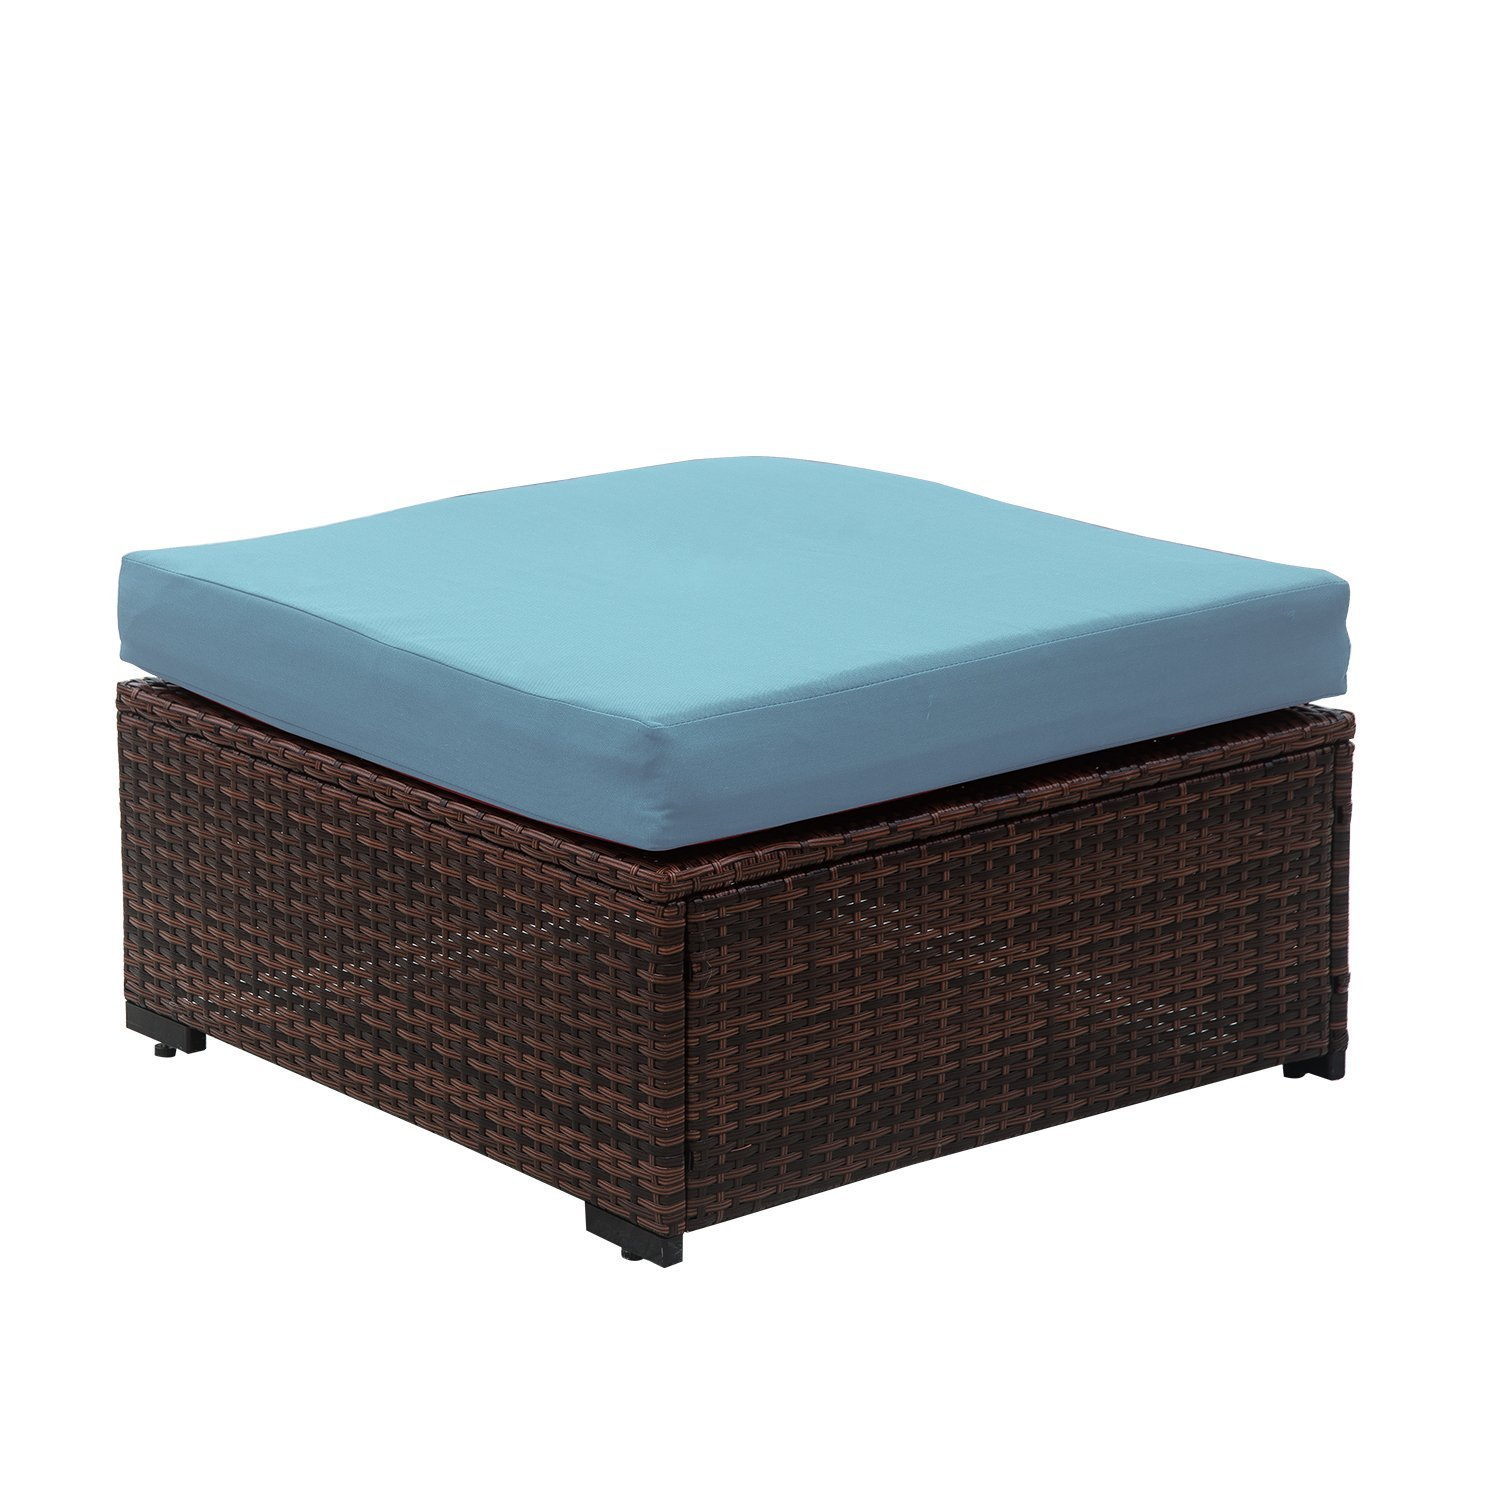 Auro Outdoor Wicker Ottoman Seat with Water Resistant Blue Olefin Cushion   All Weather Patio Foot Rest Stool Coffee Table   Porch, Backyard, Pool